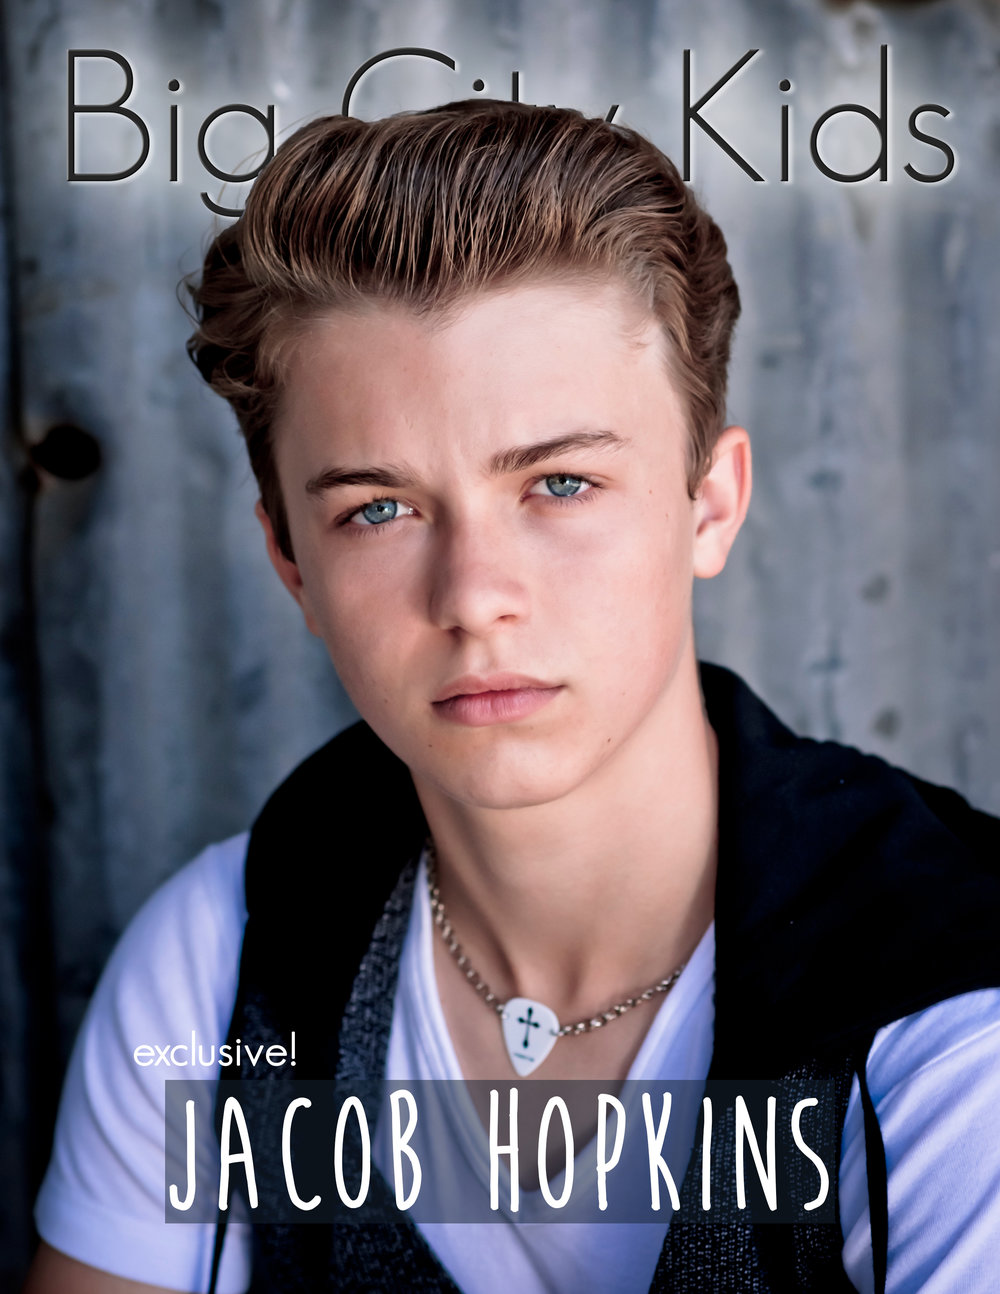 Jacob Hopkins- Big City Kids Magazine